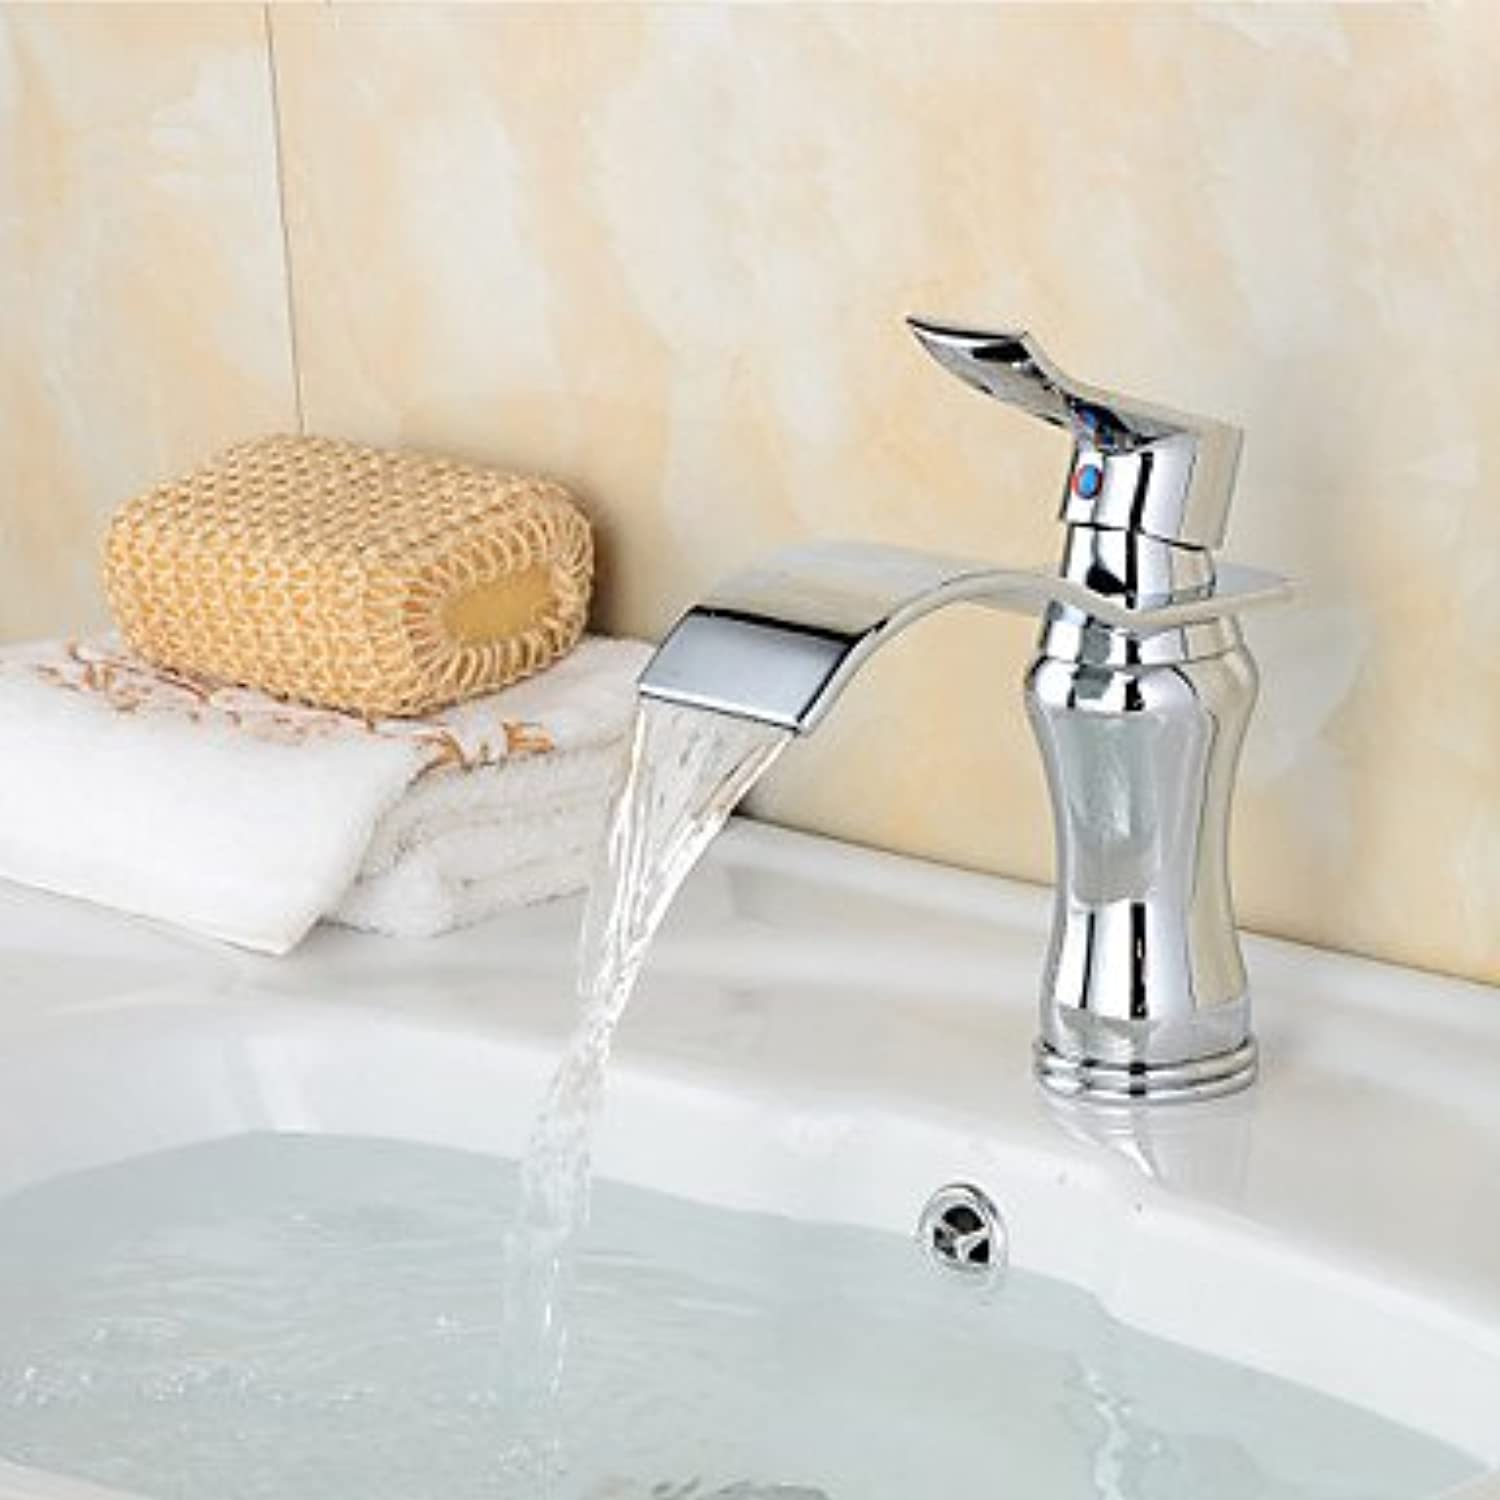 AA Faucet£? Copper chrome contemporary waterfall bathroom sink faucet-silver